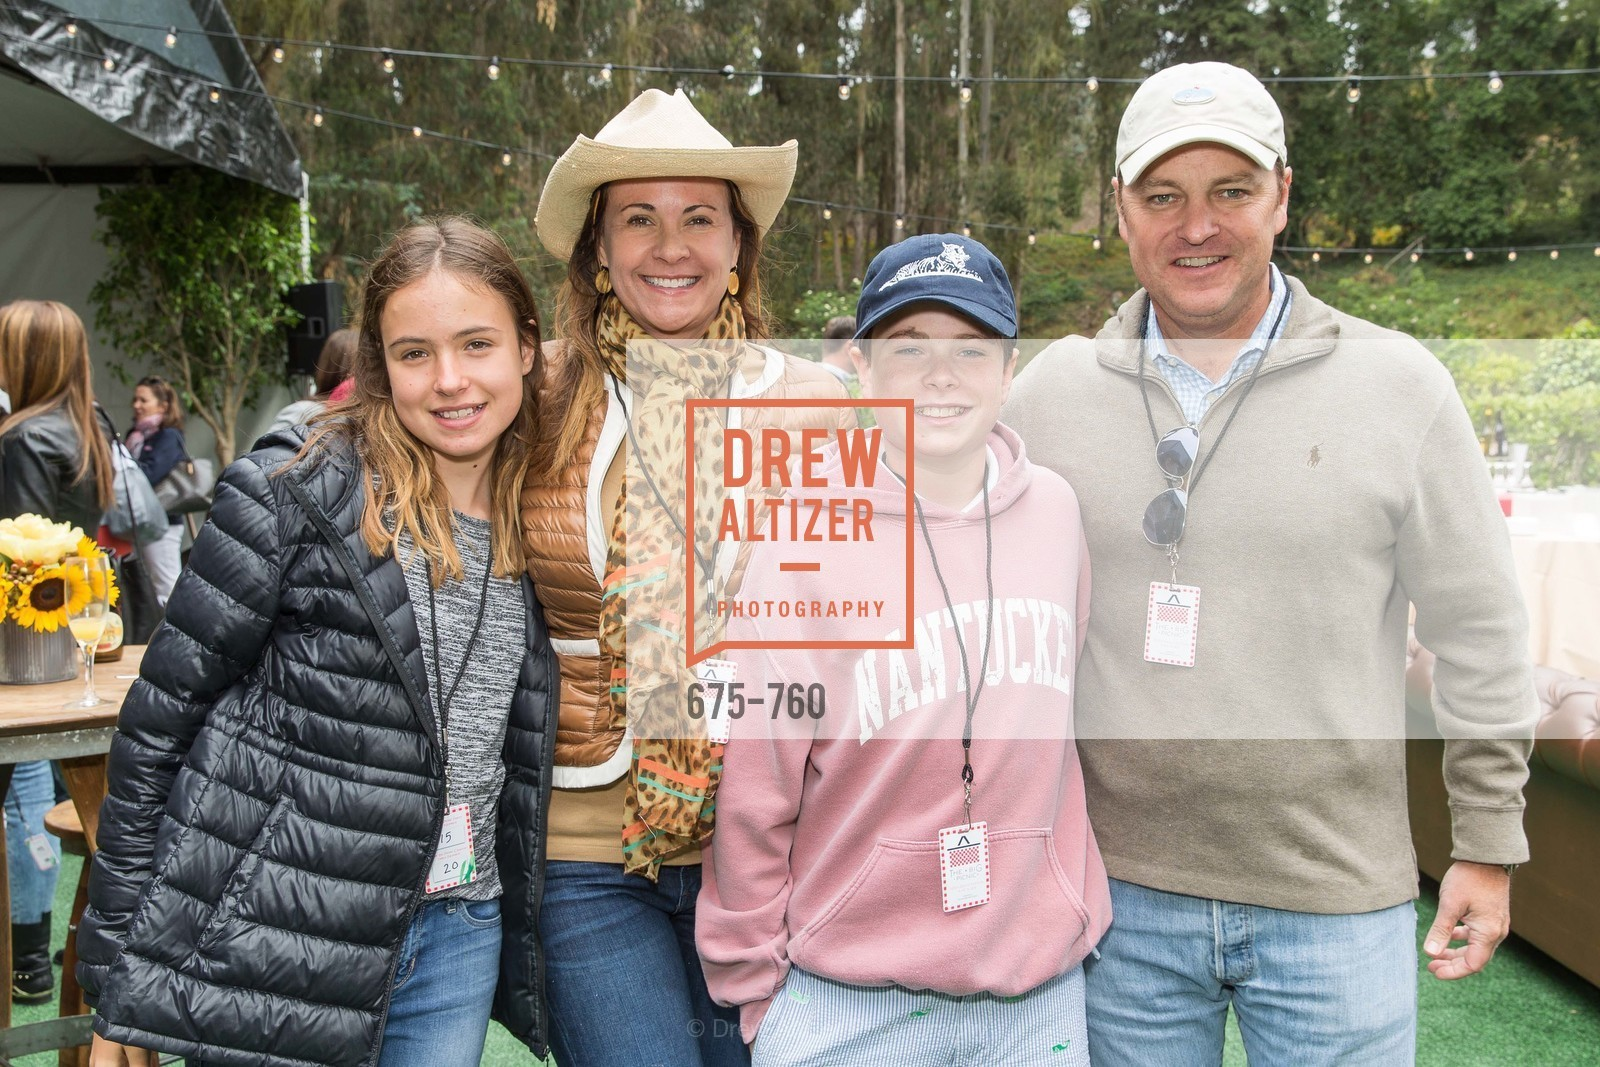 Avery Peterson, Tanya Peterson, Richie Peterson, Rich Peterson, The Big Picnic! A Benefit & Concert for STERN GROVE FESTIVAL, US, June 14th, 2015,Drew Altizer, Drew Altizer Photography, full-service agency, private events, San Francisco photographer, photographer california